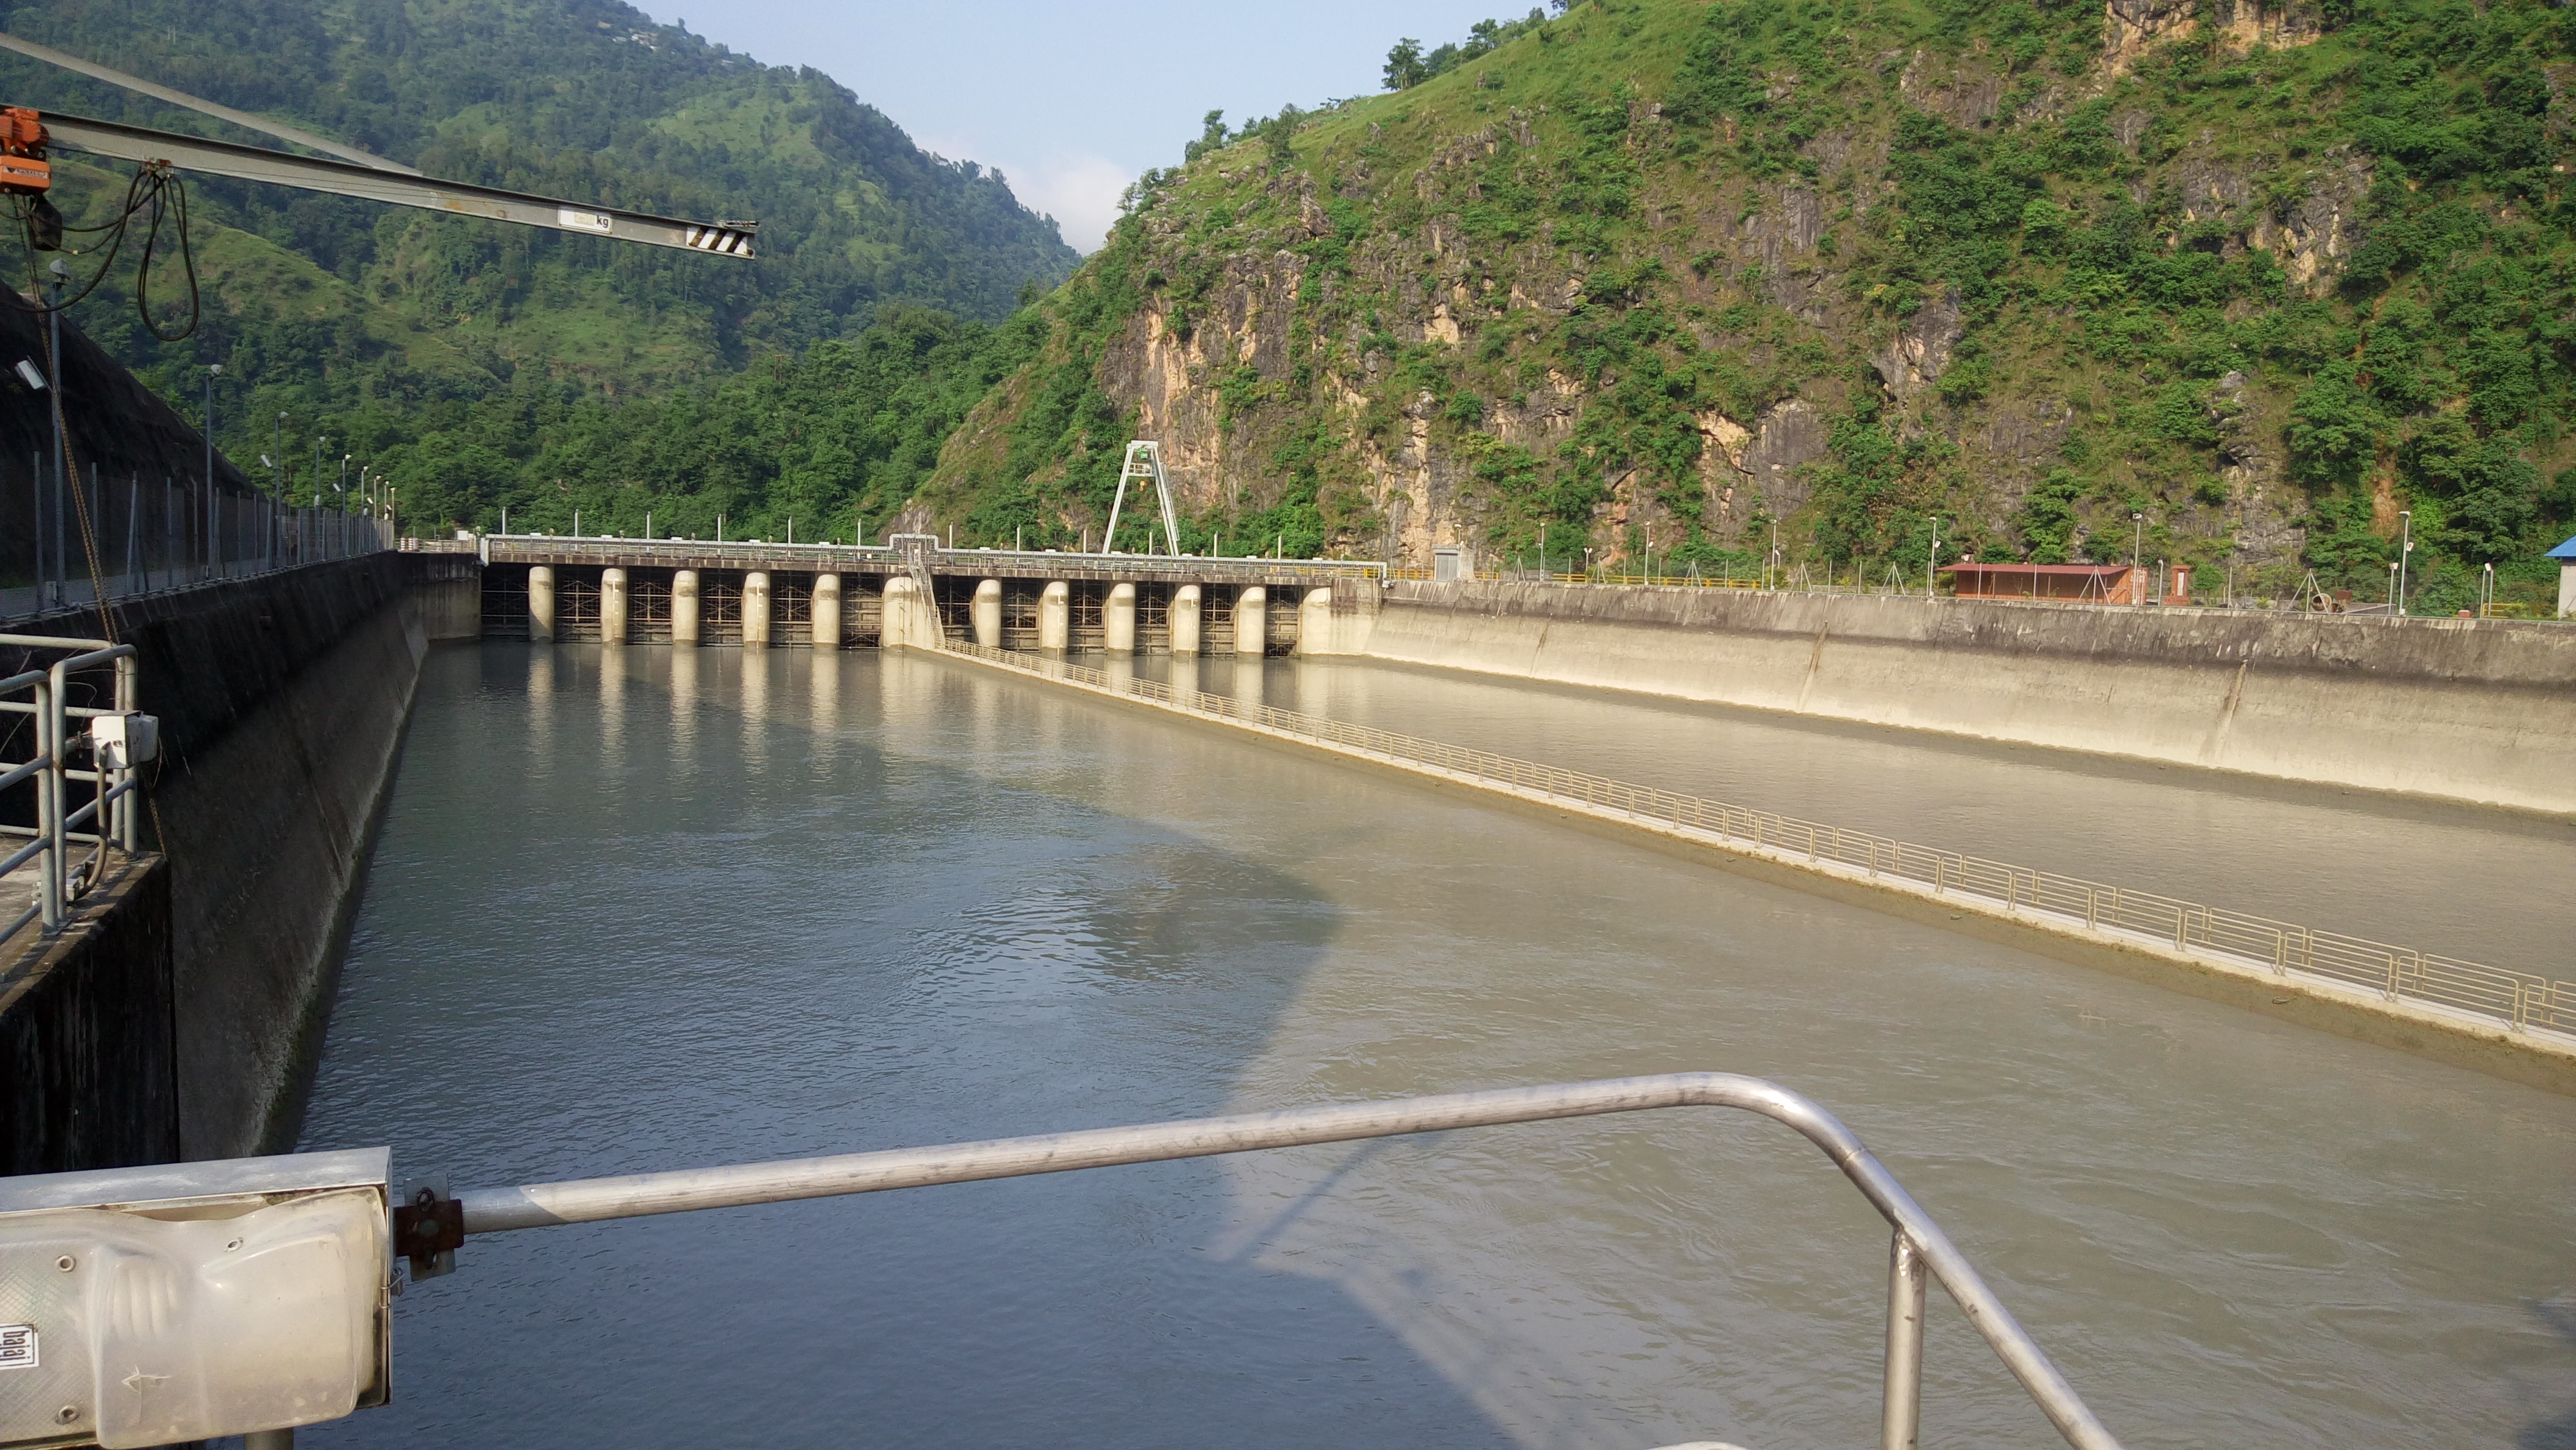 file:water reservoir of kaligandaki a hydroelectric power station in